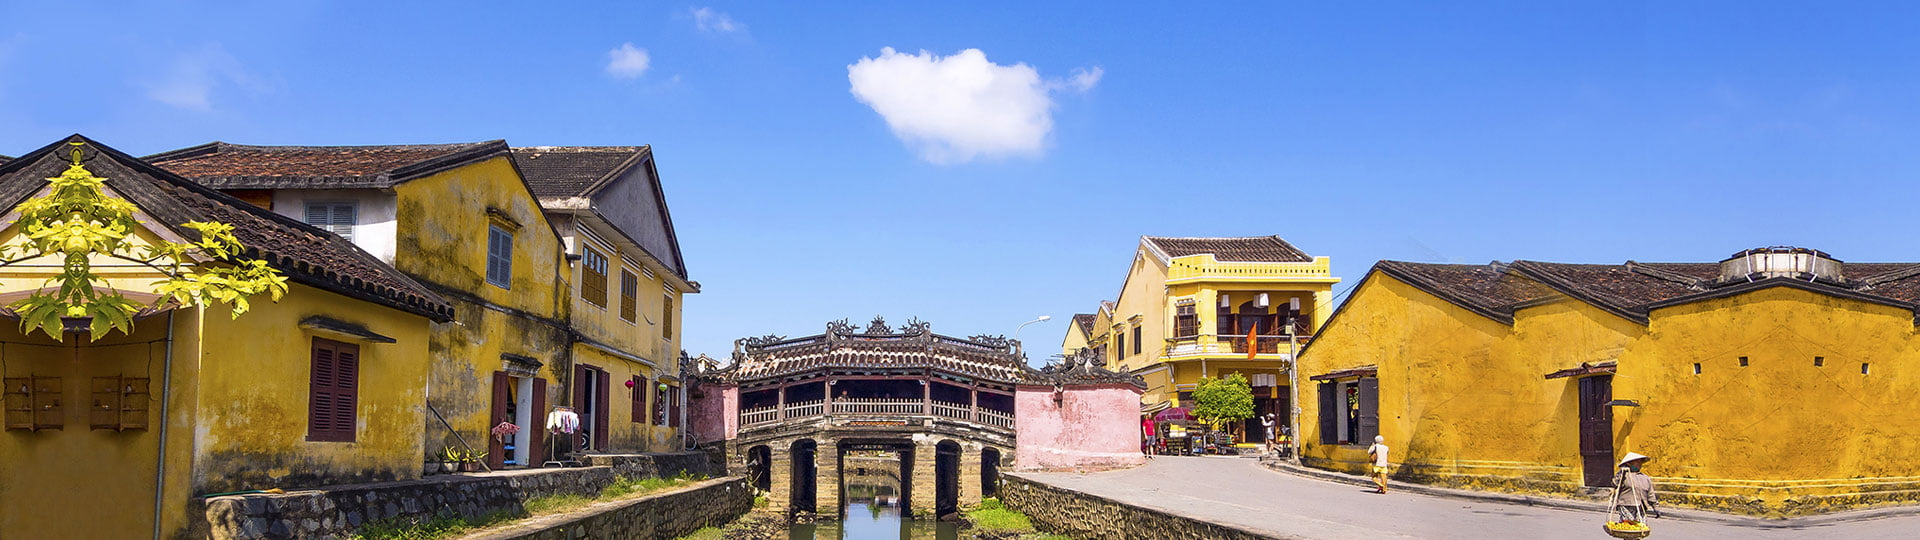 Make sure you don't miss these towns in your Vietnam holiday